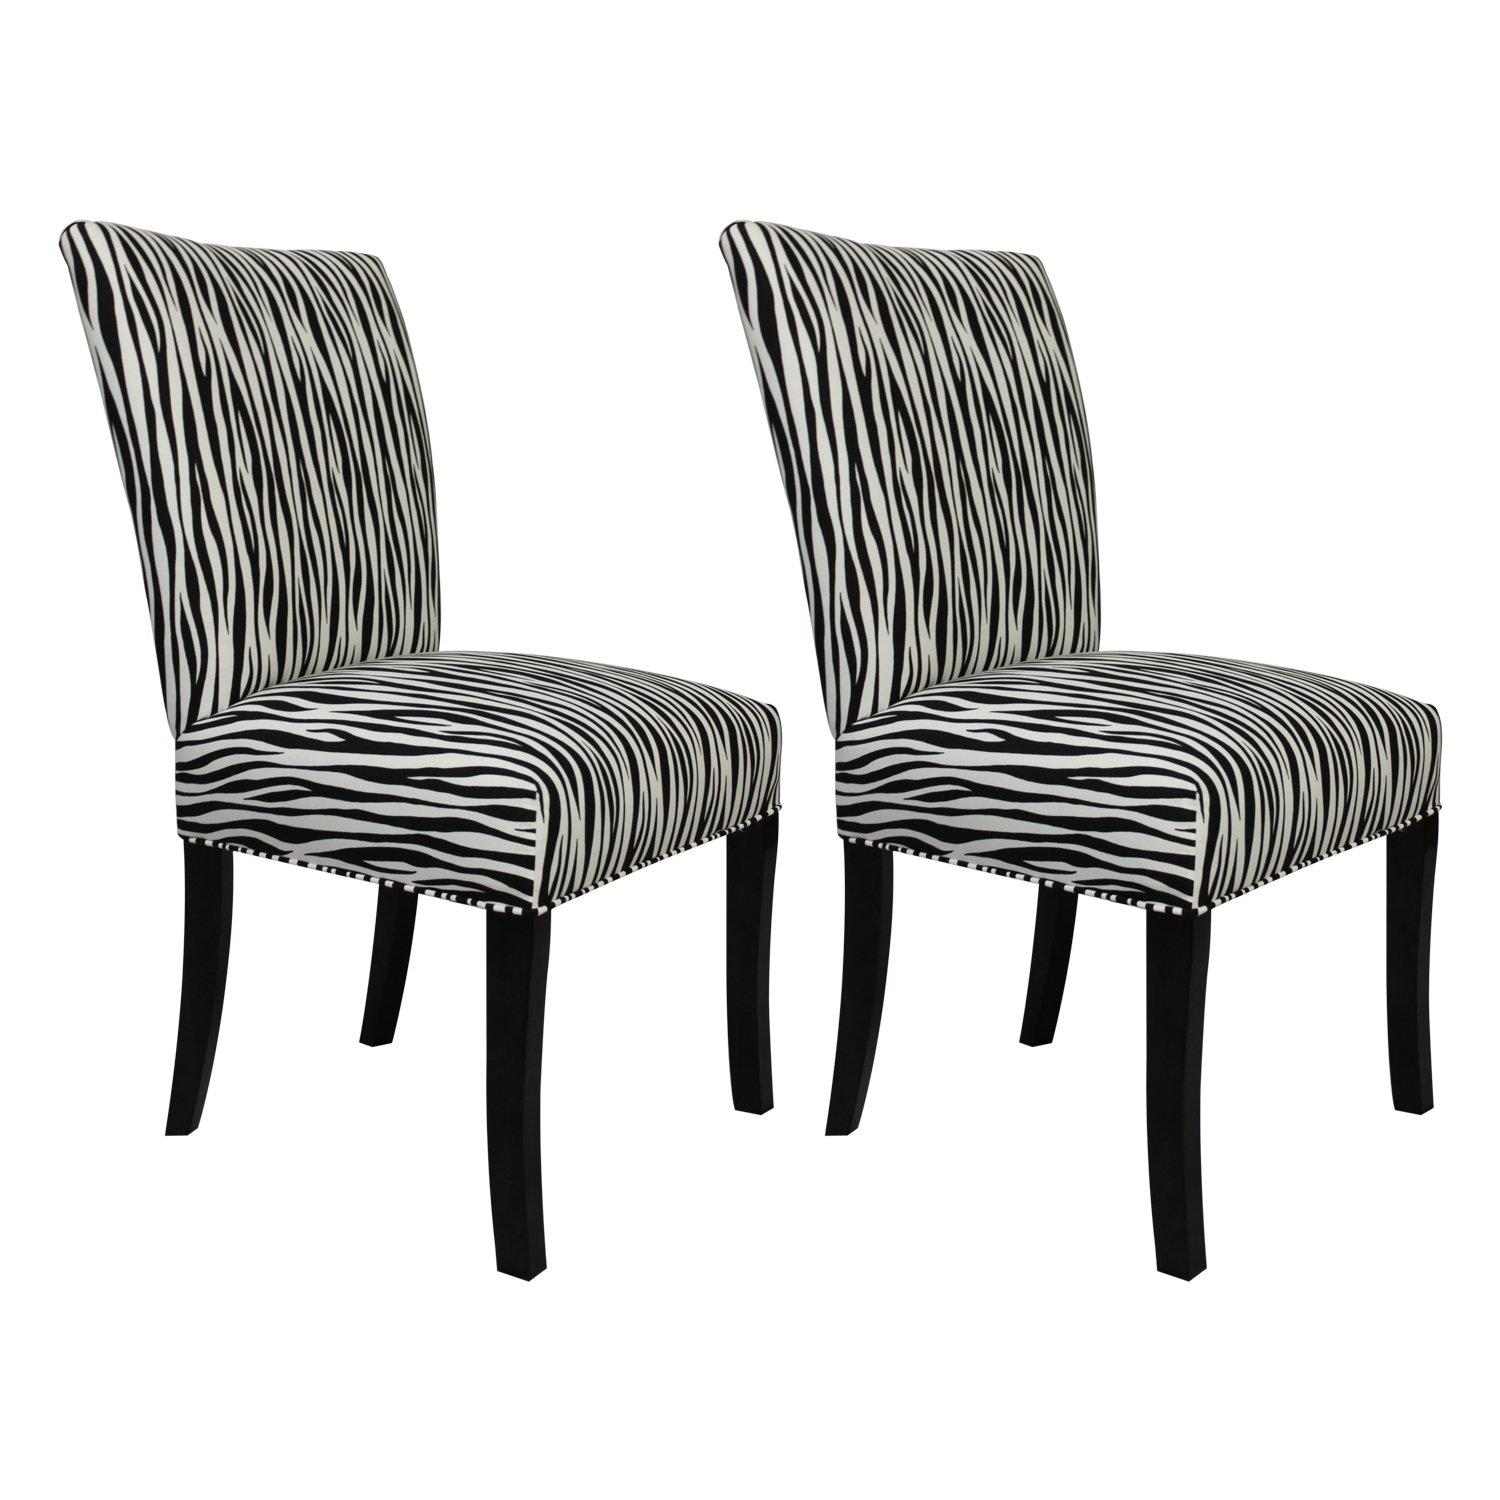 Amazon com sole designs julia collection dining chairs a set of 2 upholstered modern dining room chairs side chair miami zebra pattern chairs